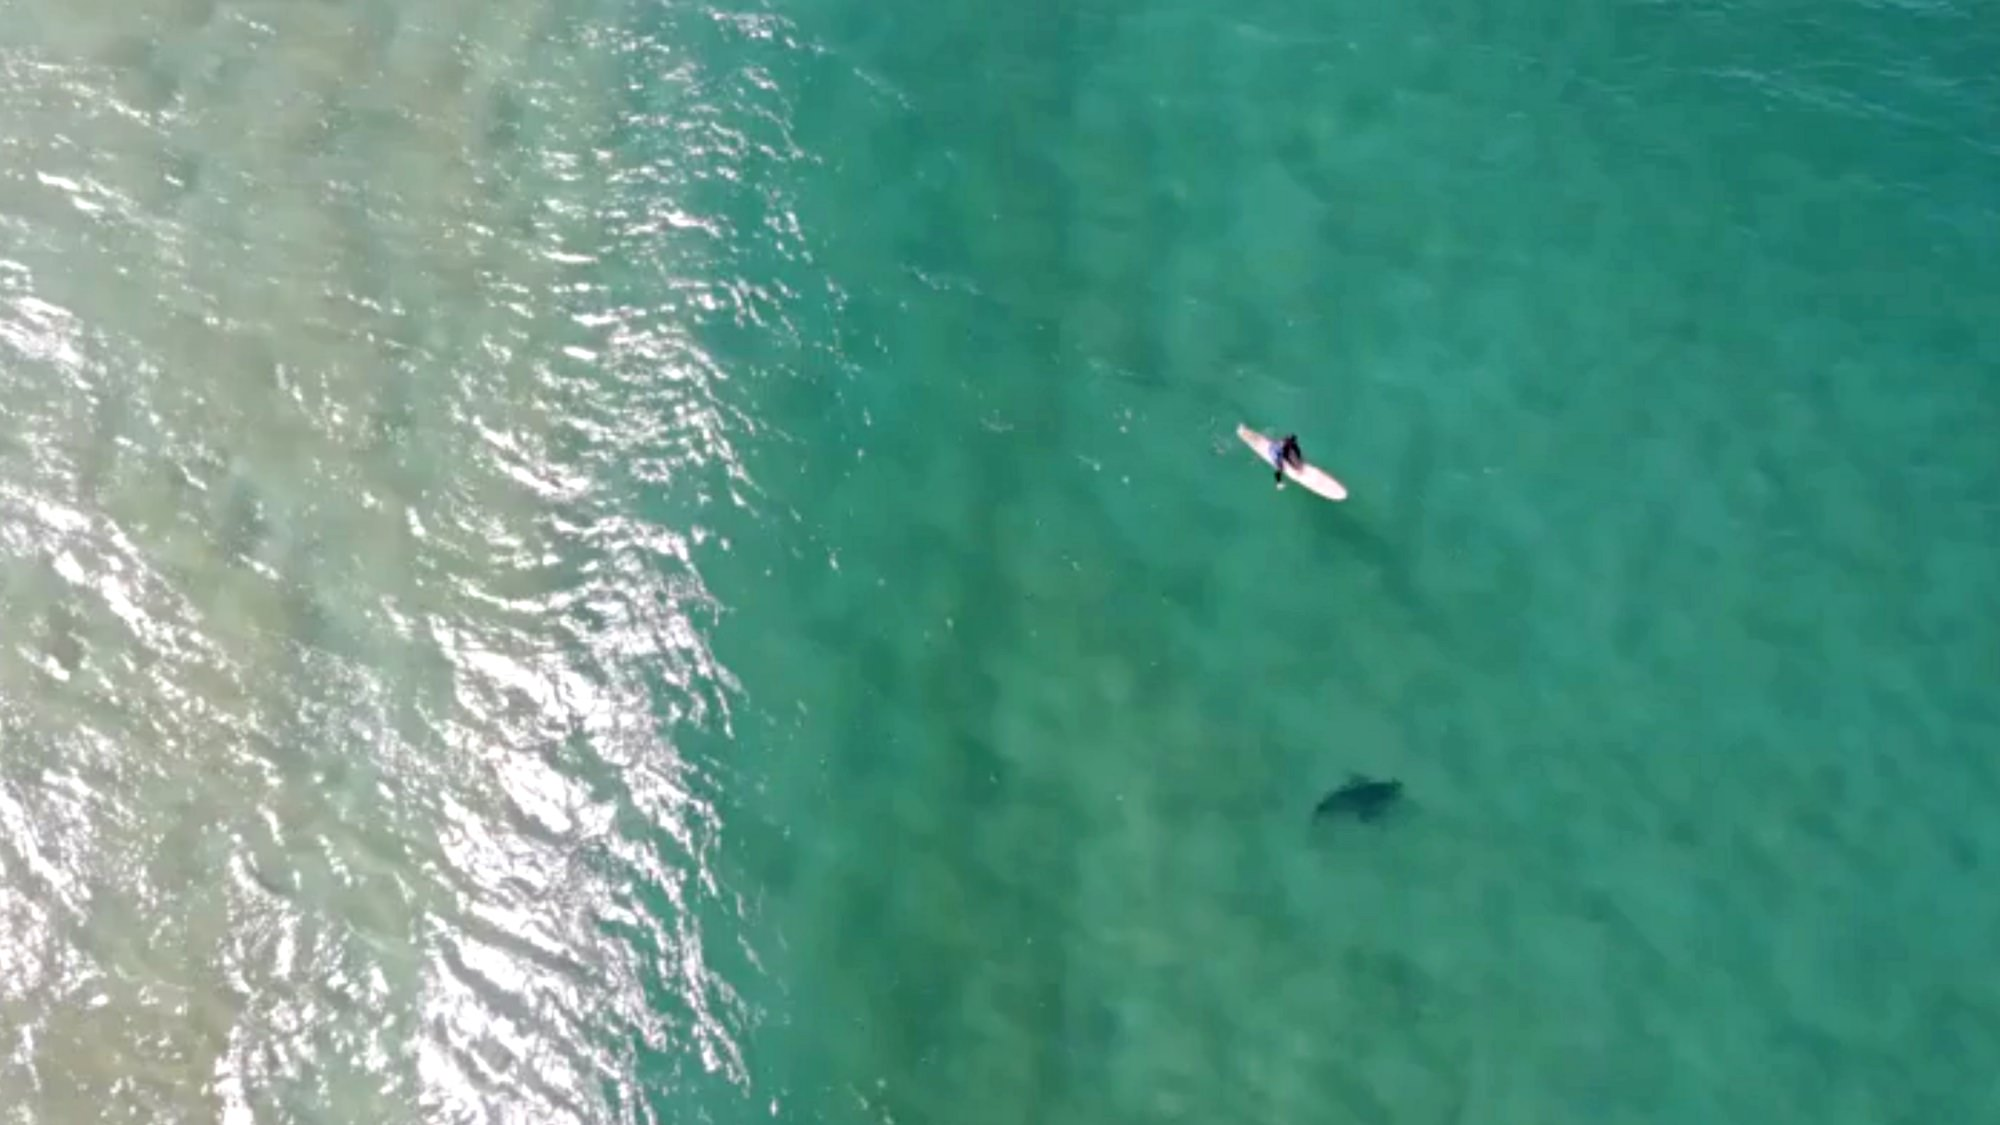 Drone pilot uses Mavic 2 Enterprise to warn surfer of approaching shark